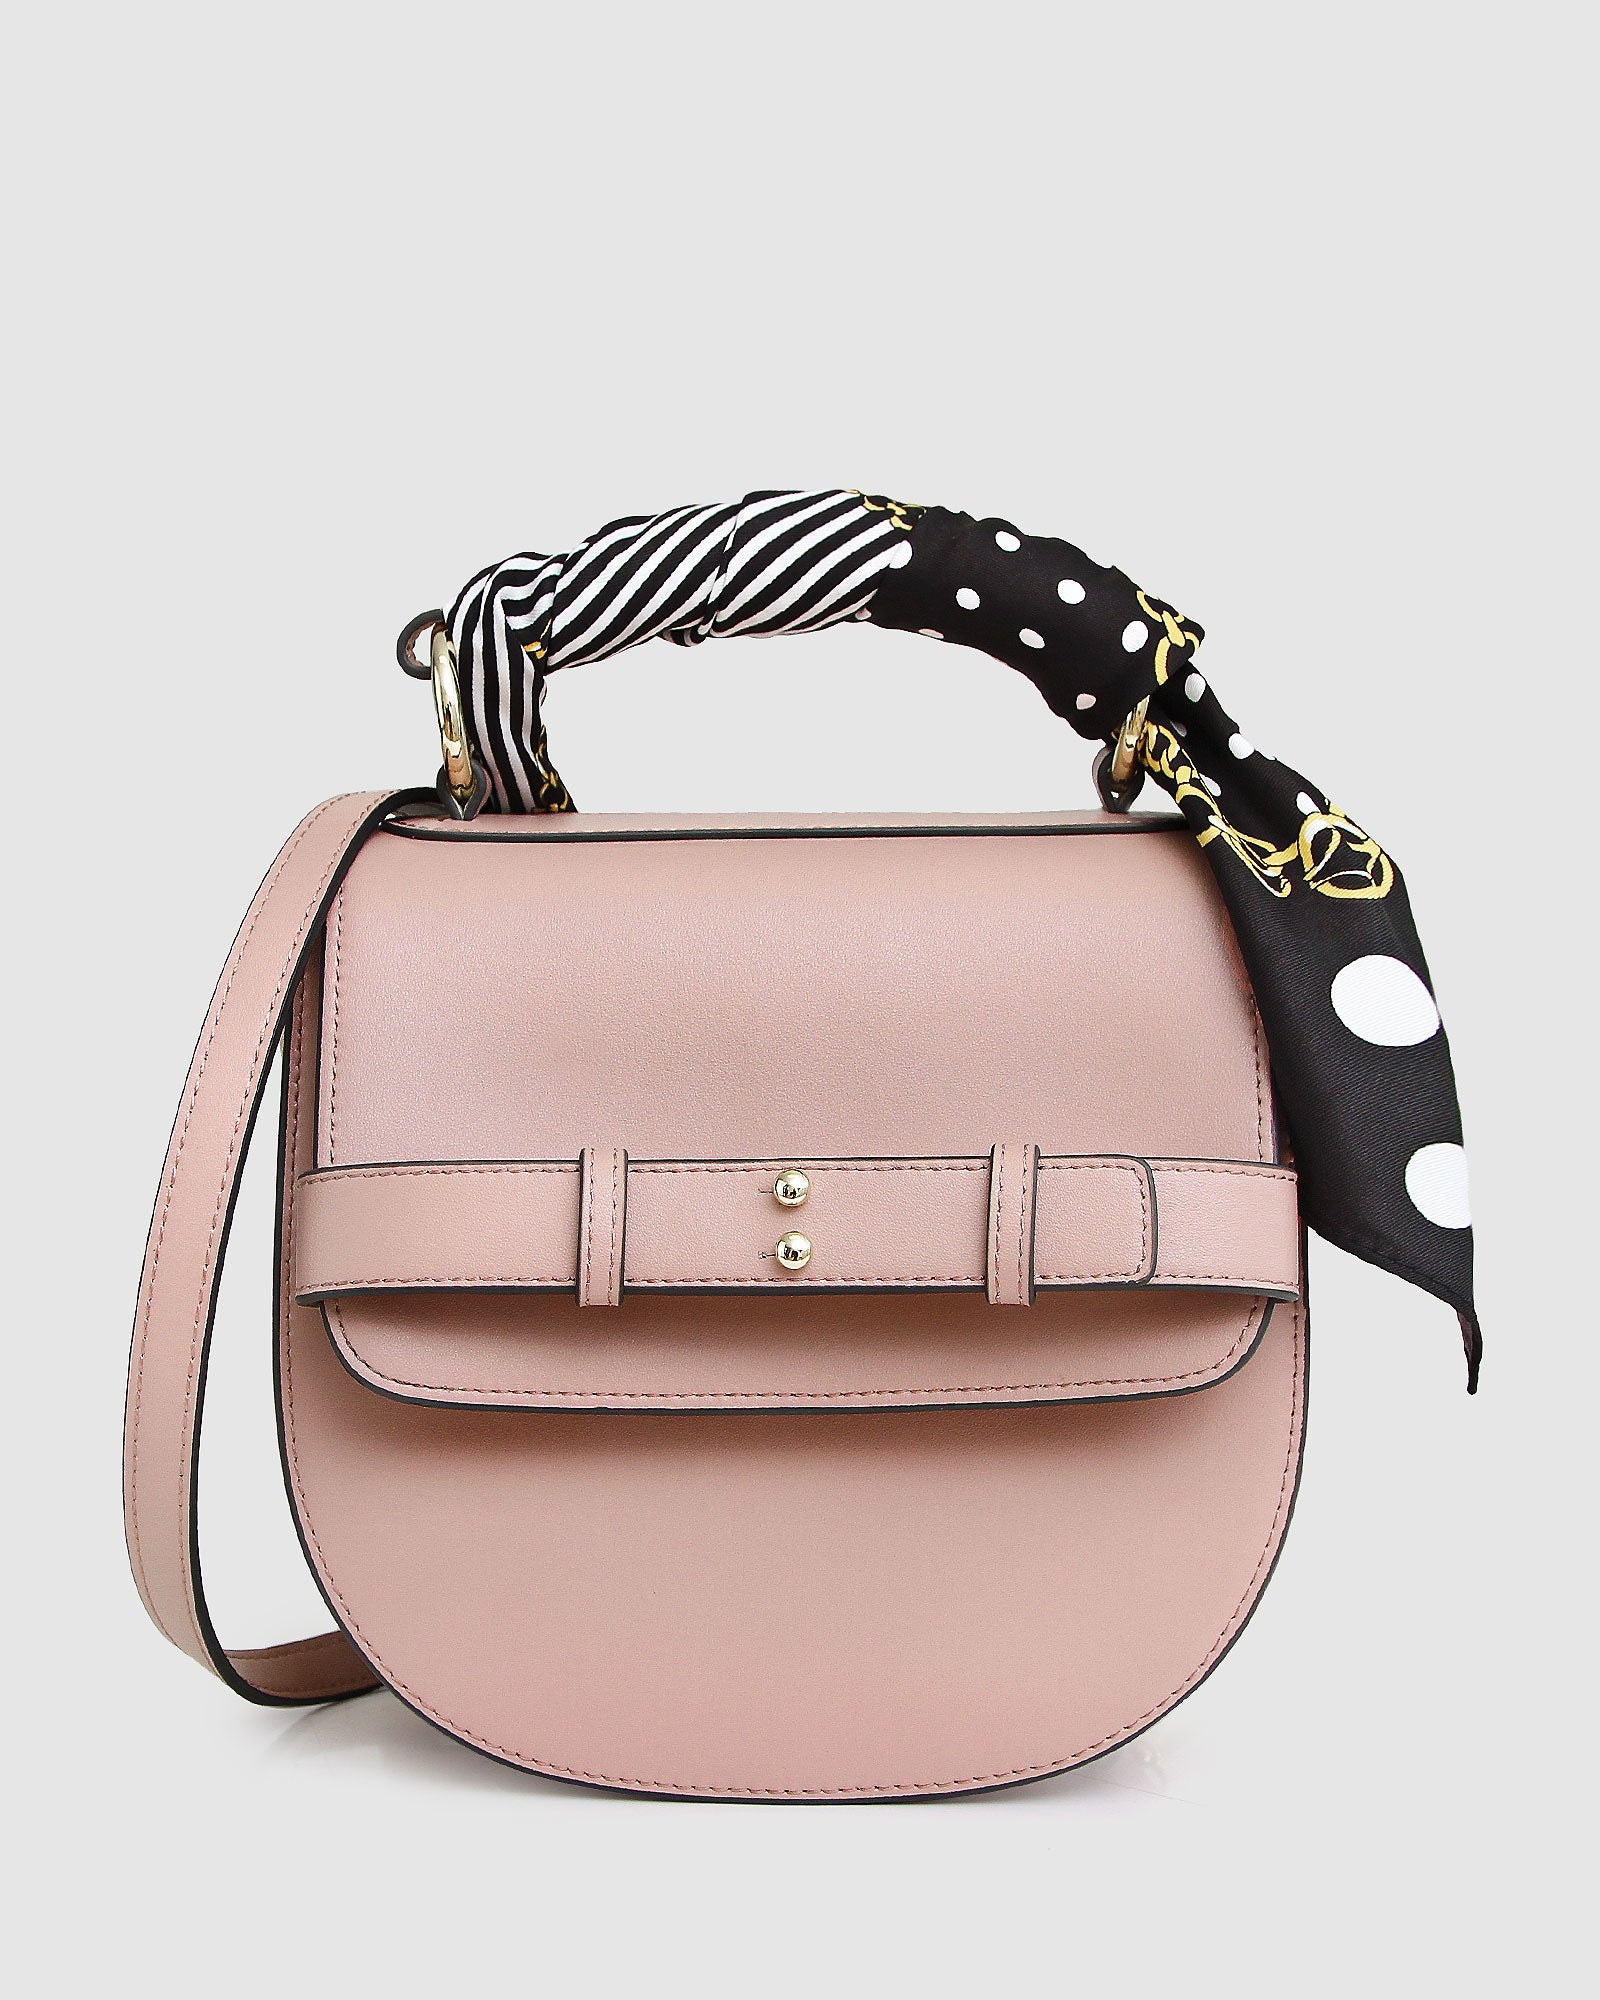 dusty-pink-leather-bag-cross-body-scarf.jpg